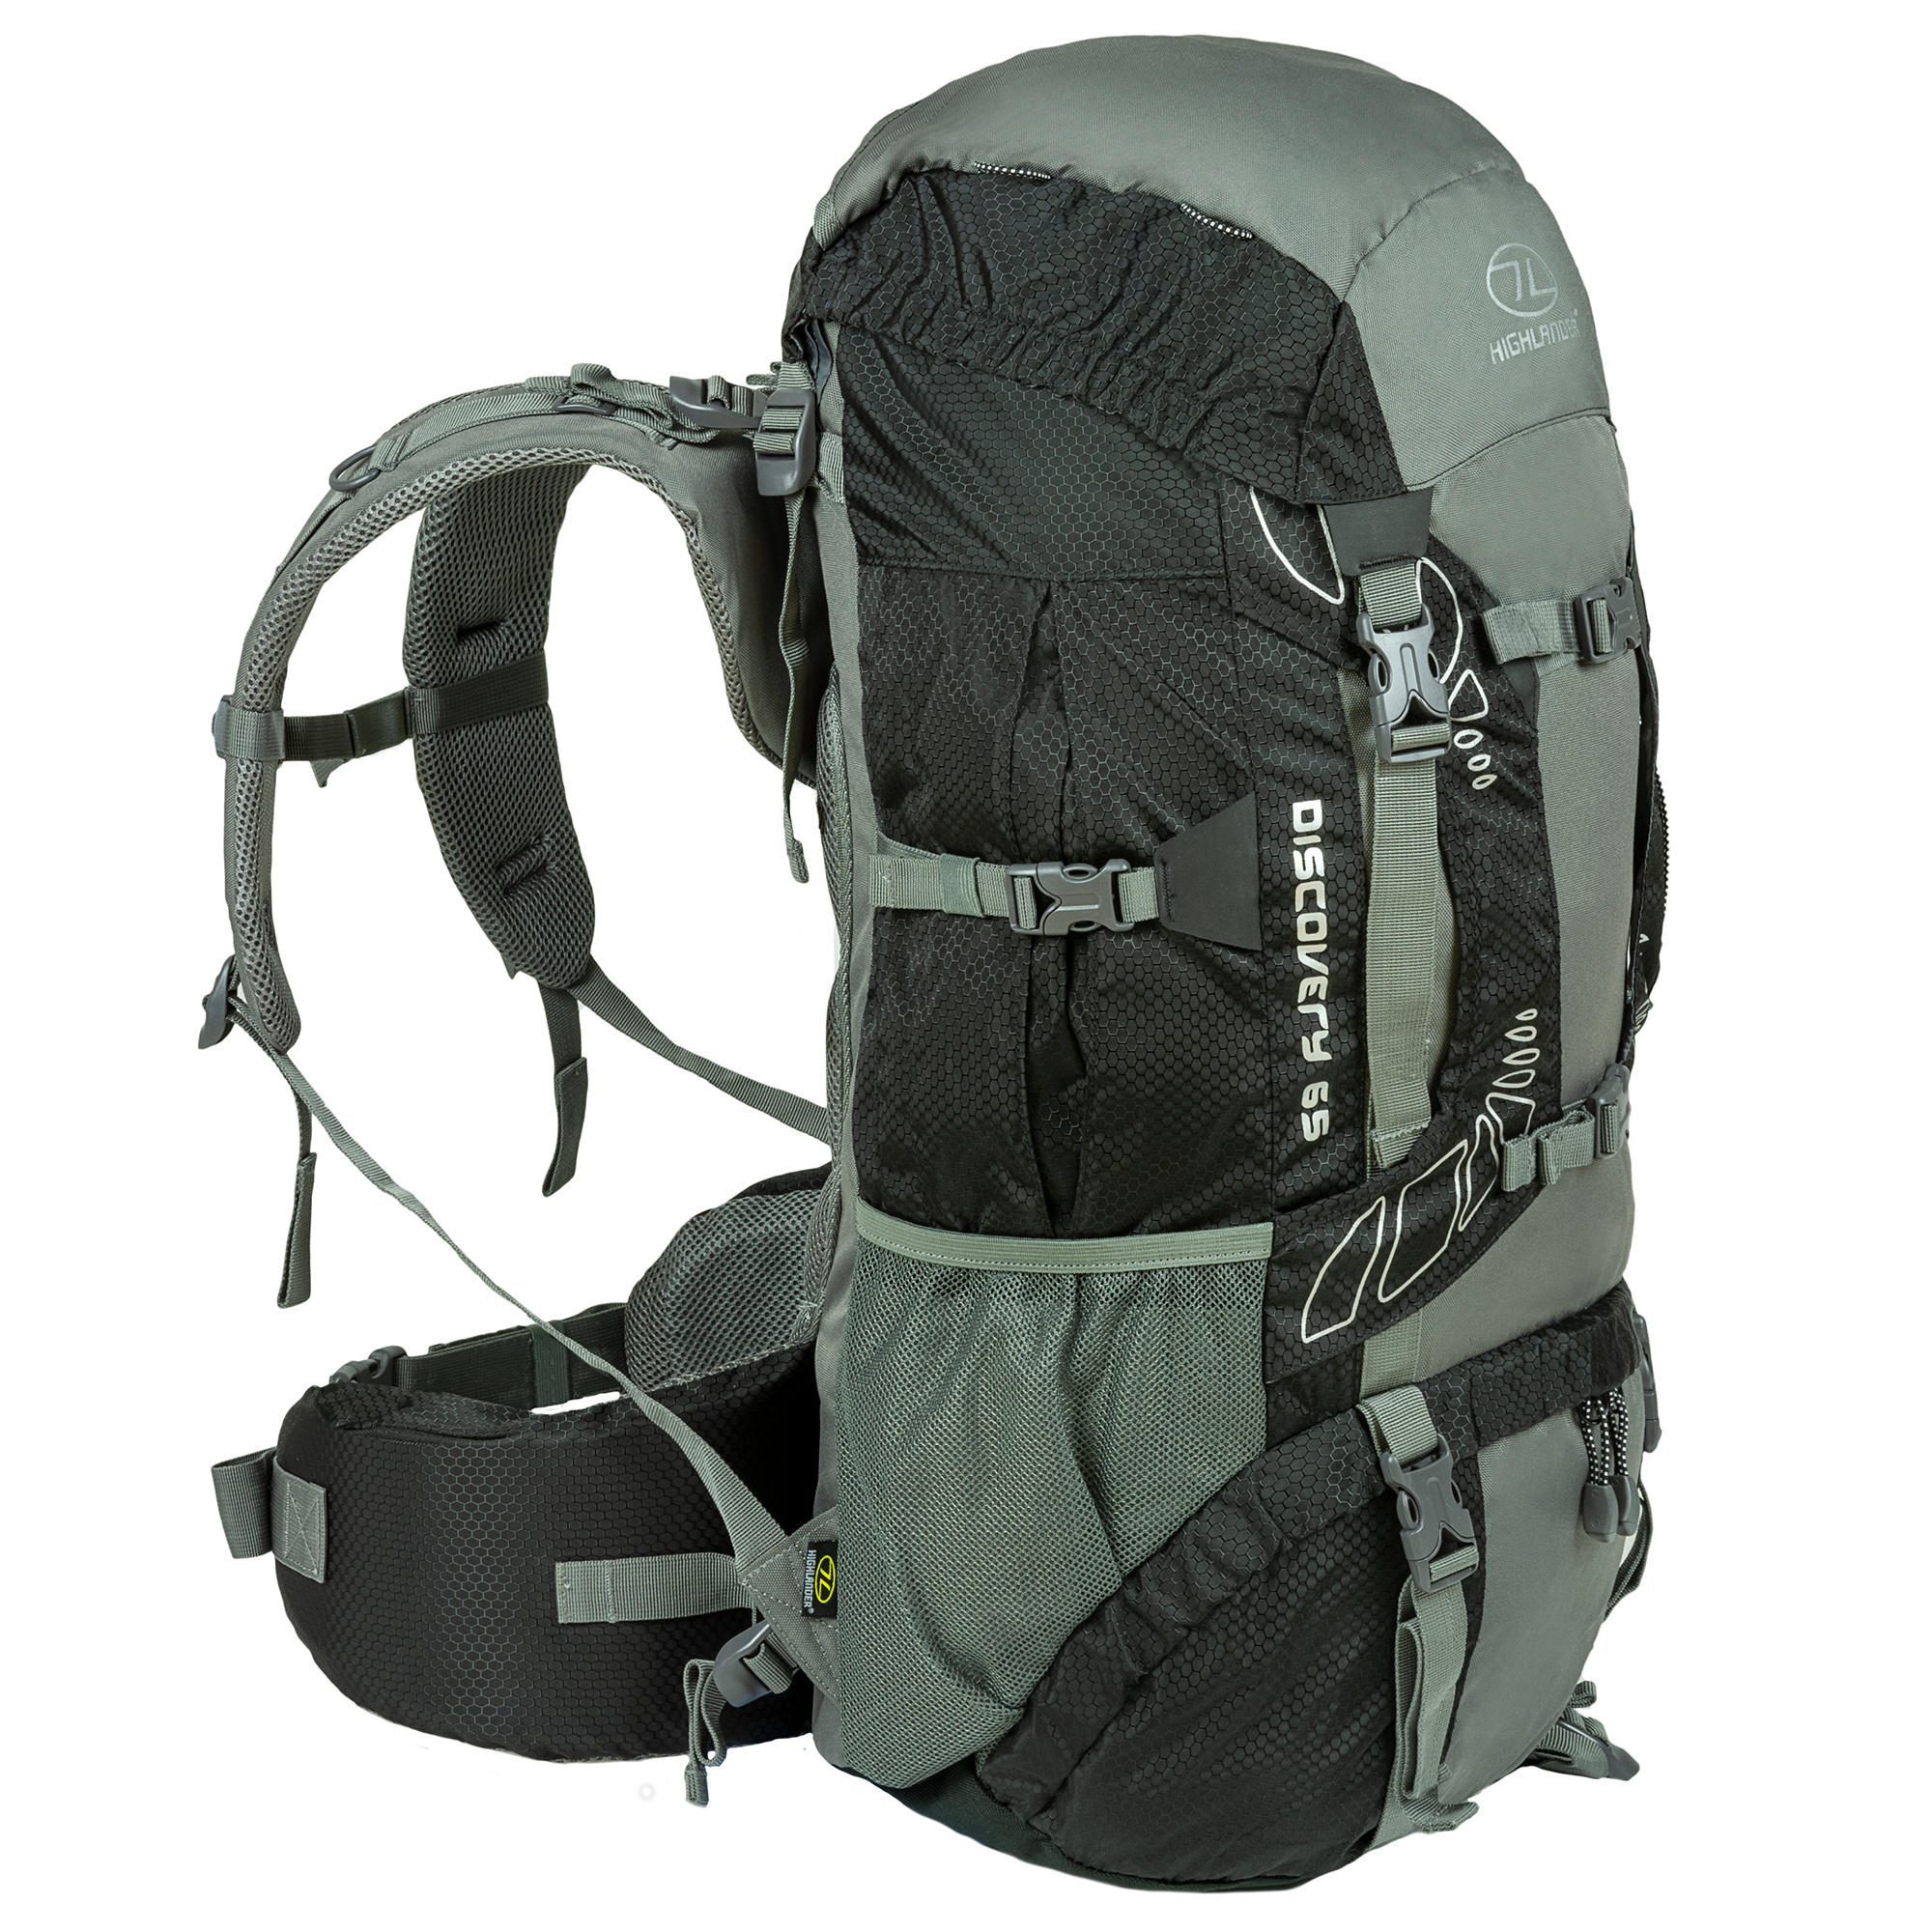 1370640793f Highlander Discovery 65l backpack - zwart | Backpackspullen.nl